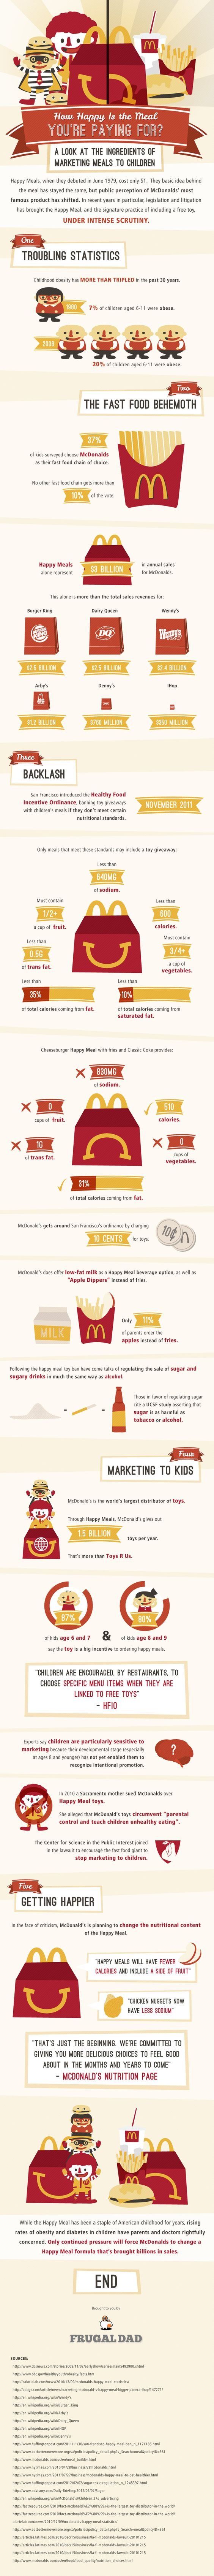 Disturbing Facts About Happy Meals